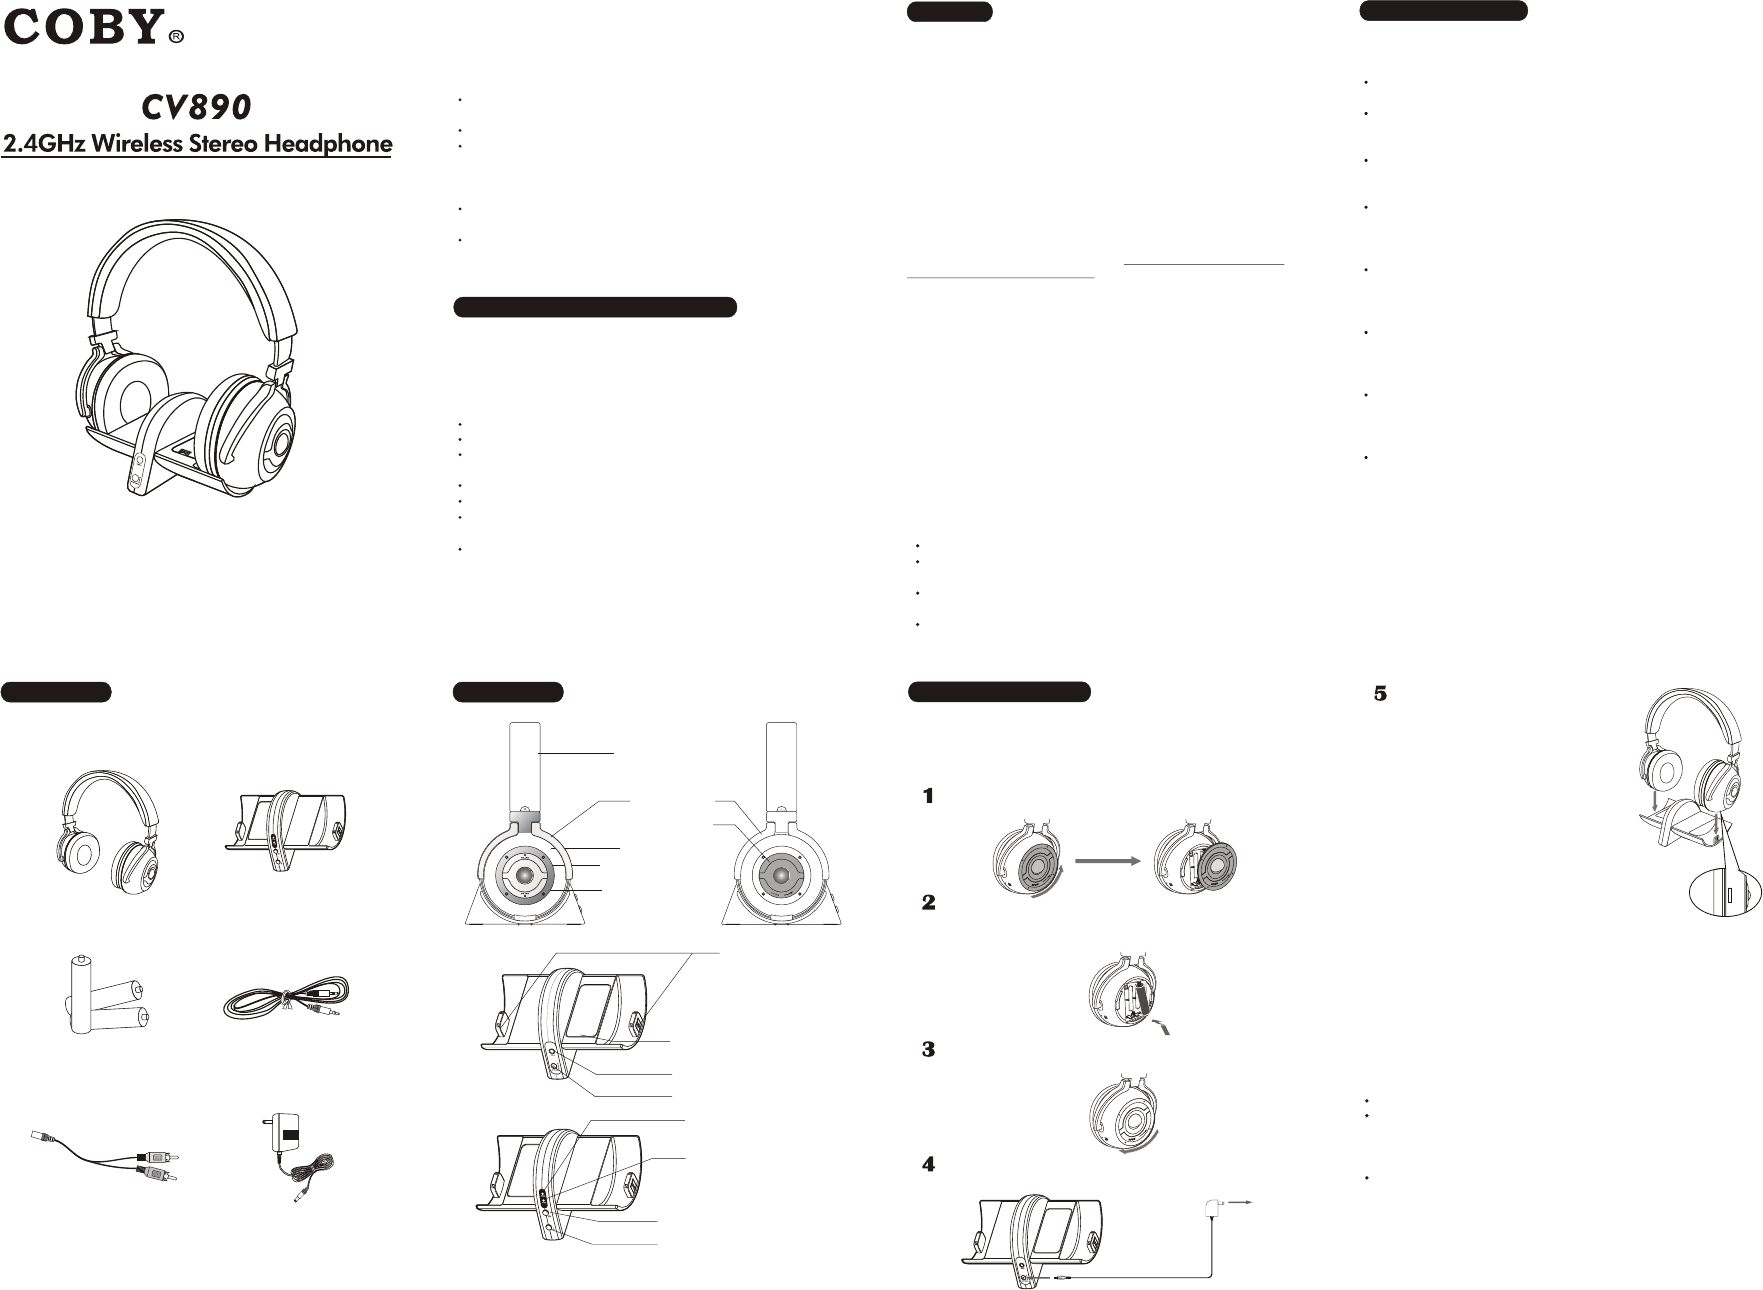 COBY electronic CV 890 Headphones User Manual